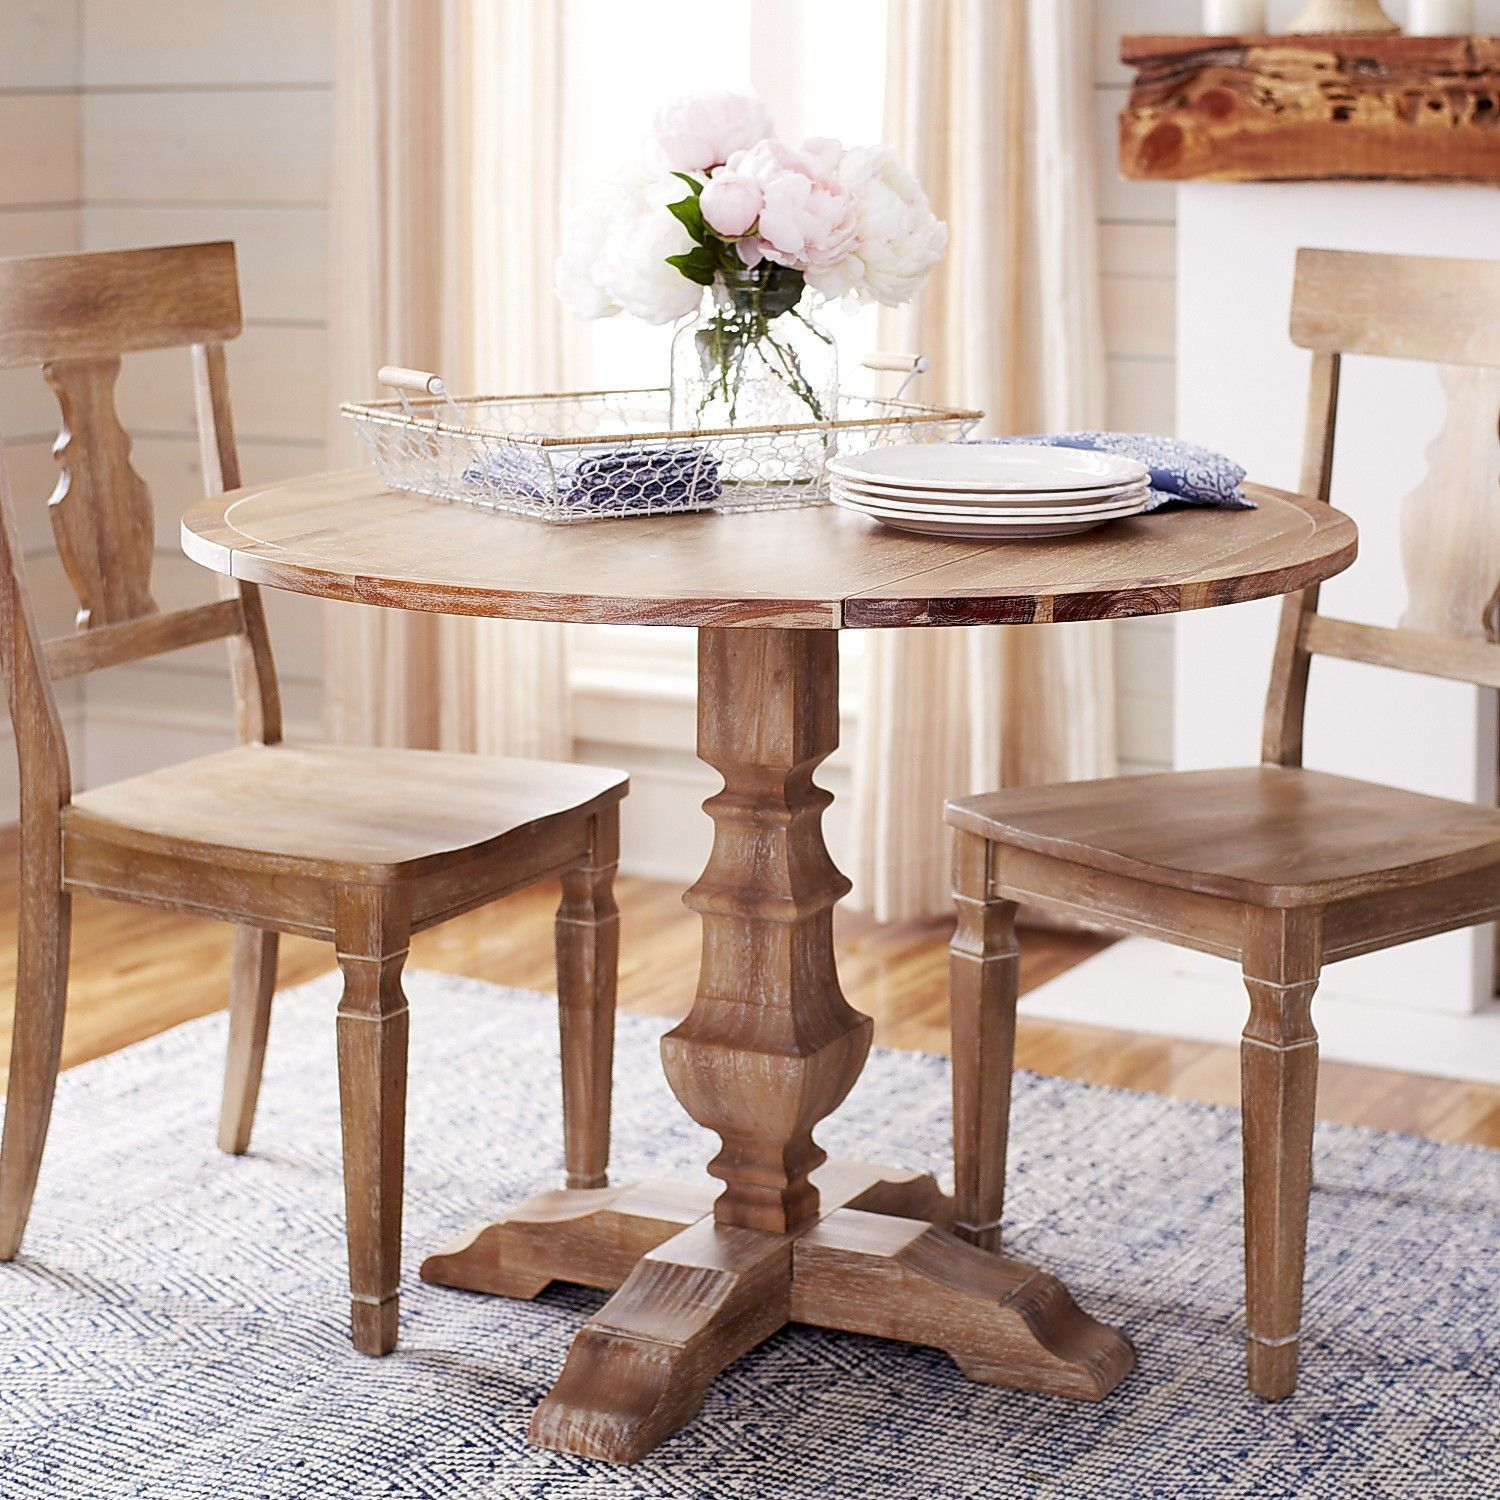 Bradding Natural Stonewash Drop Leaf Dining Table | Dining sets ...